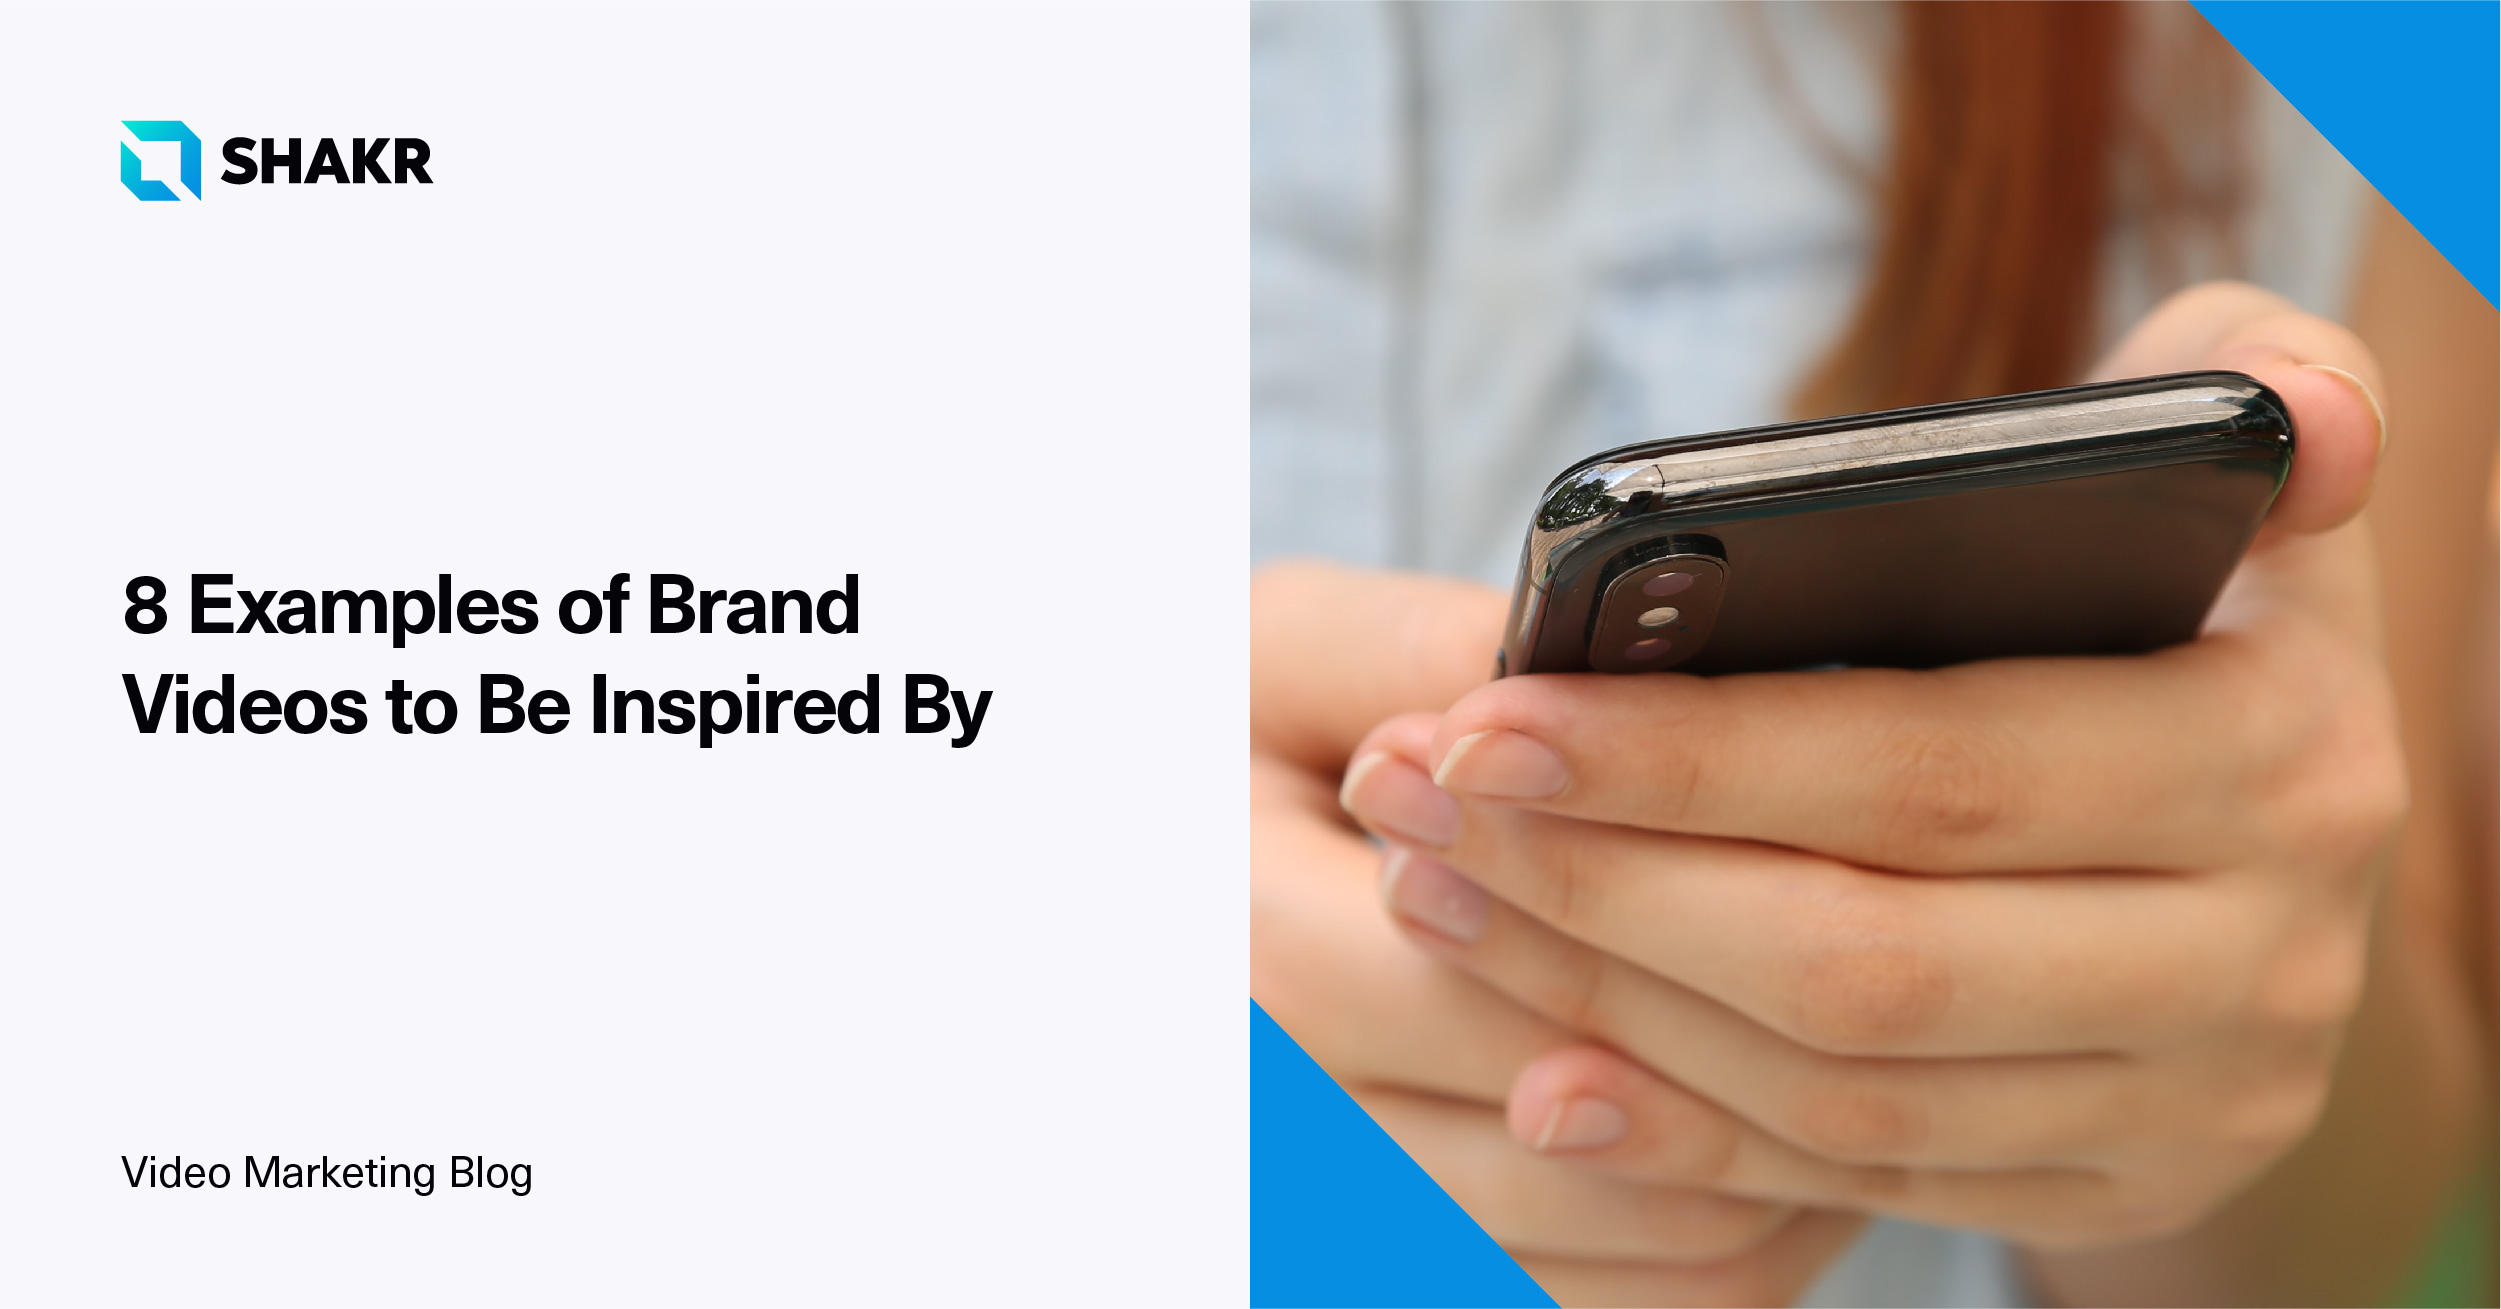 8 Examples of Brand Videos to Be Inspired By